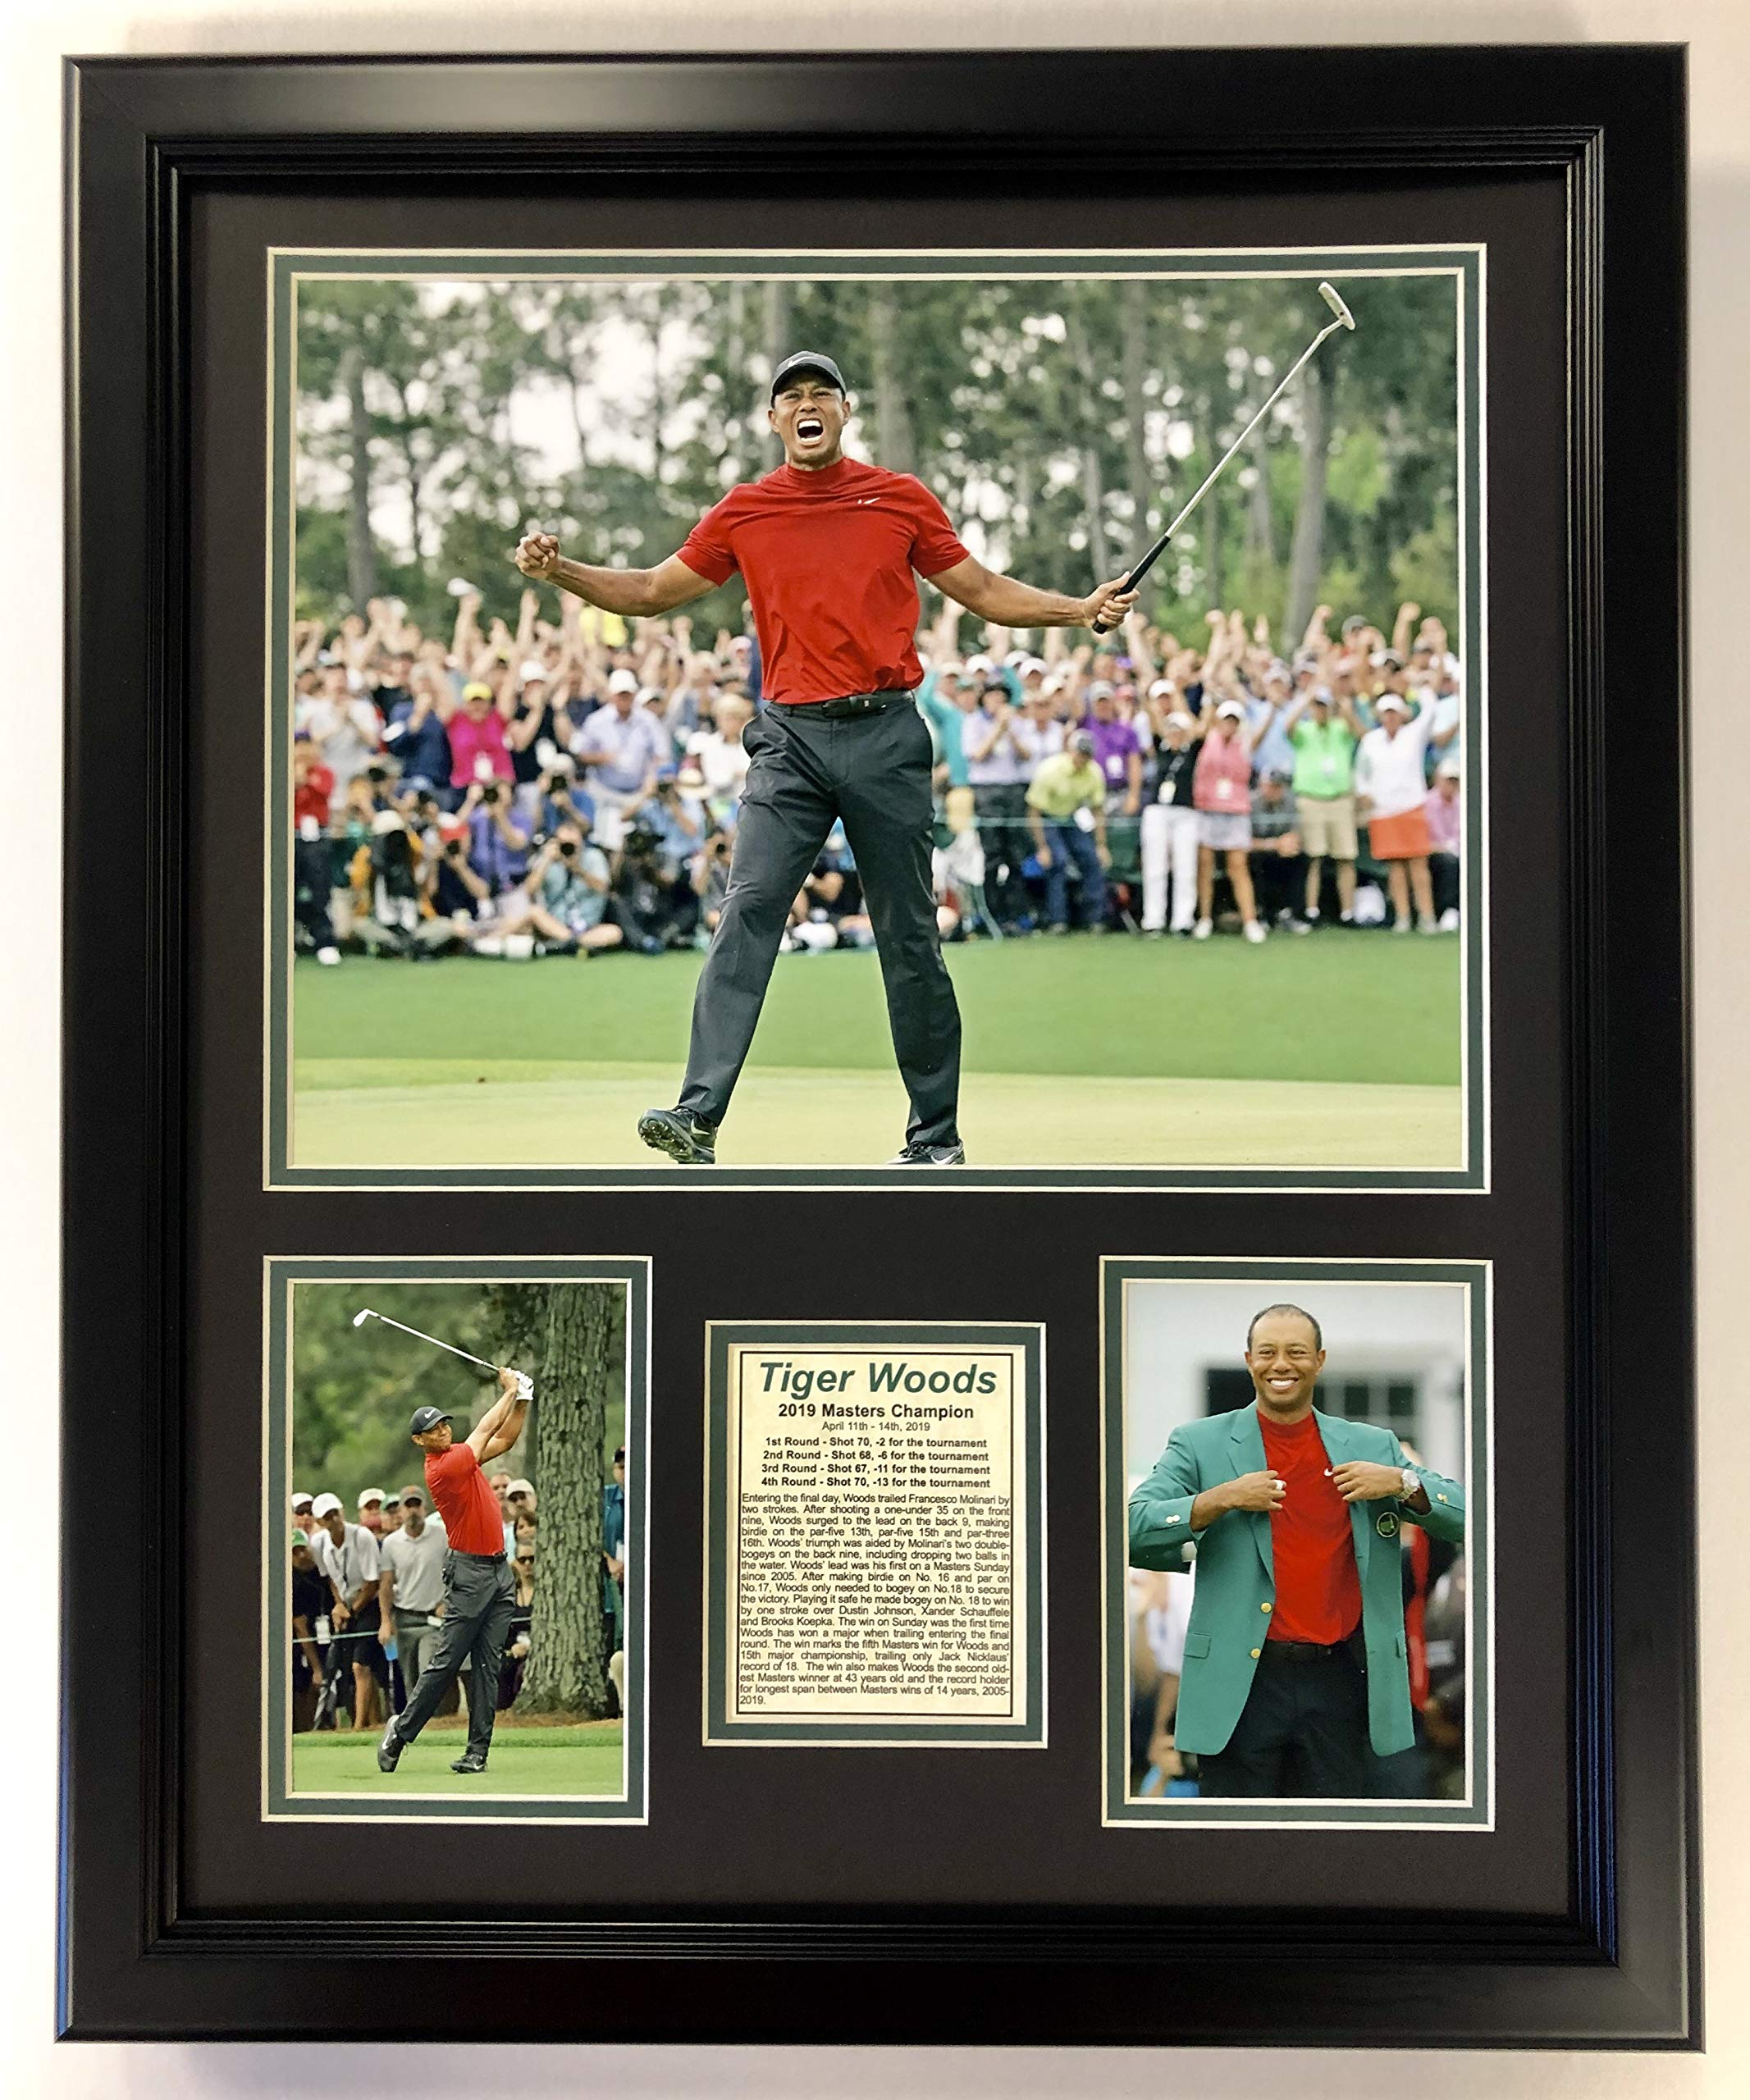 Legends Never Die Tiger Woods - 2019 Masters Champion Celebration - 18'' x 22'' Framed Double Matted Photo by Legends Never Die (Image #1)